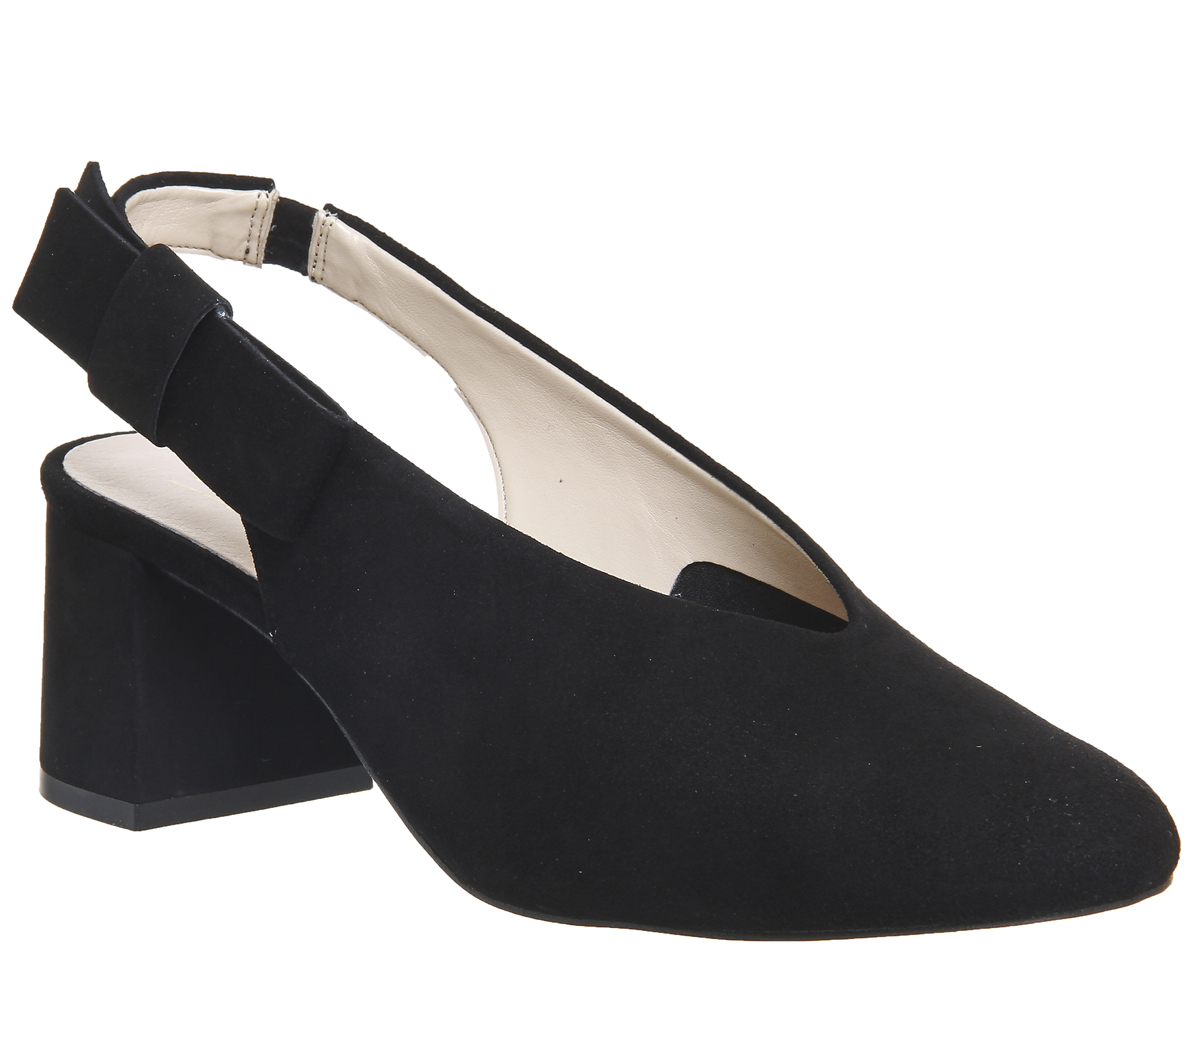 Womens-Office-Magical-Bow-Slingback-Heels-Black-Suede-Heels thumbnail 3